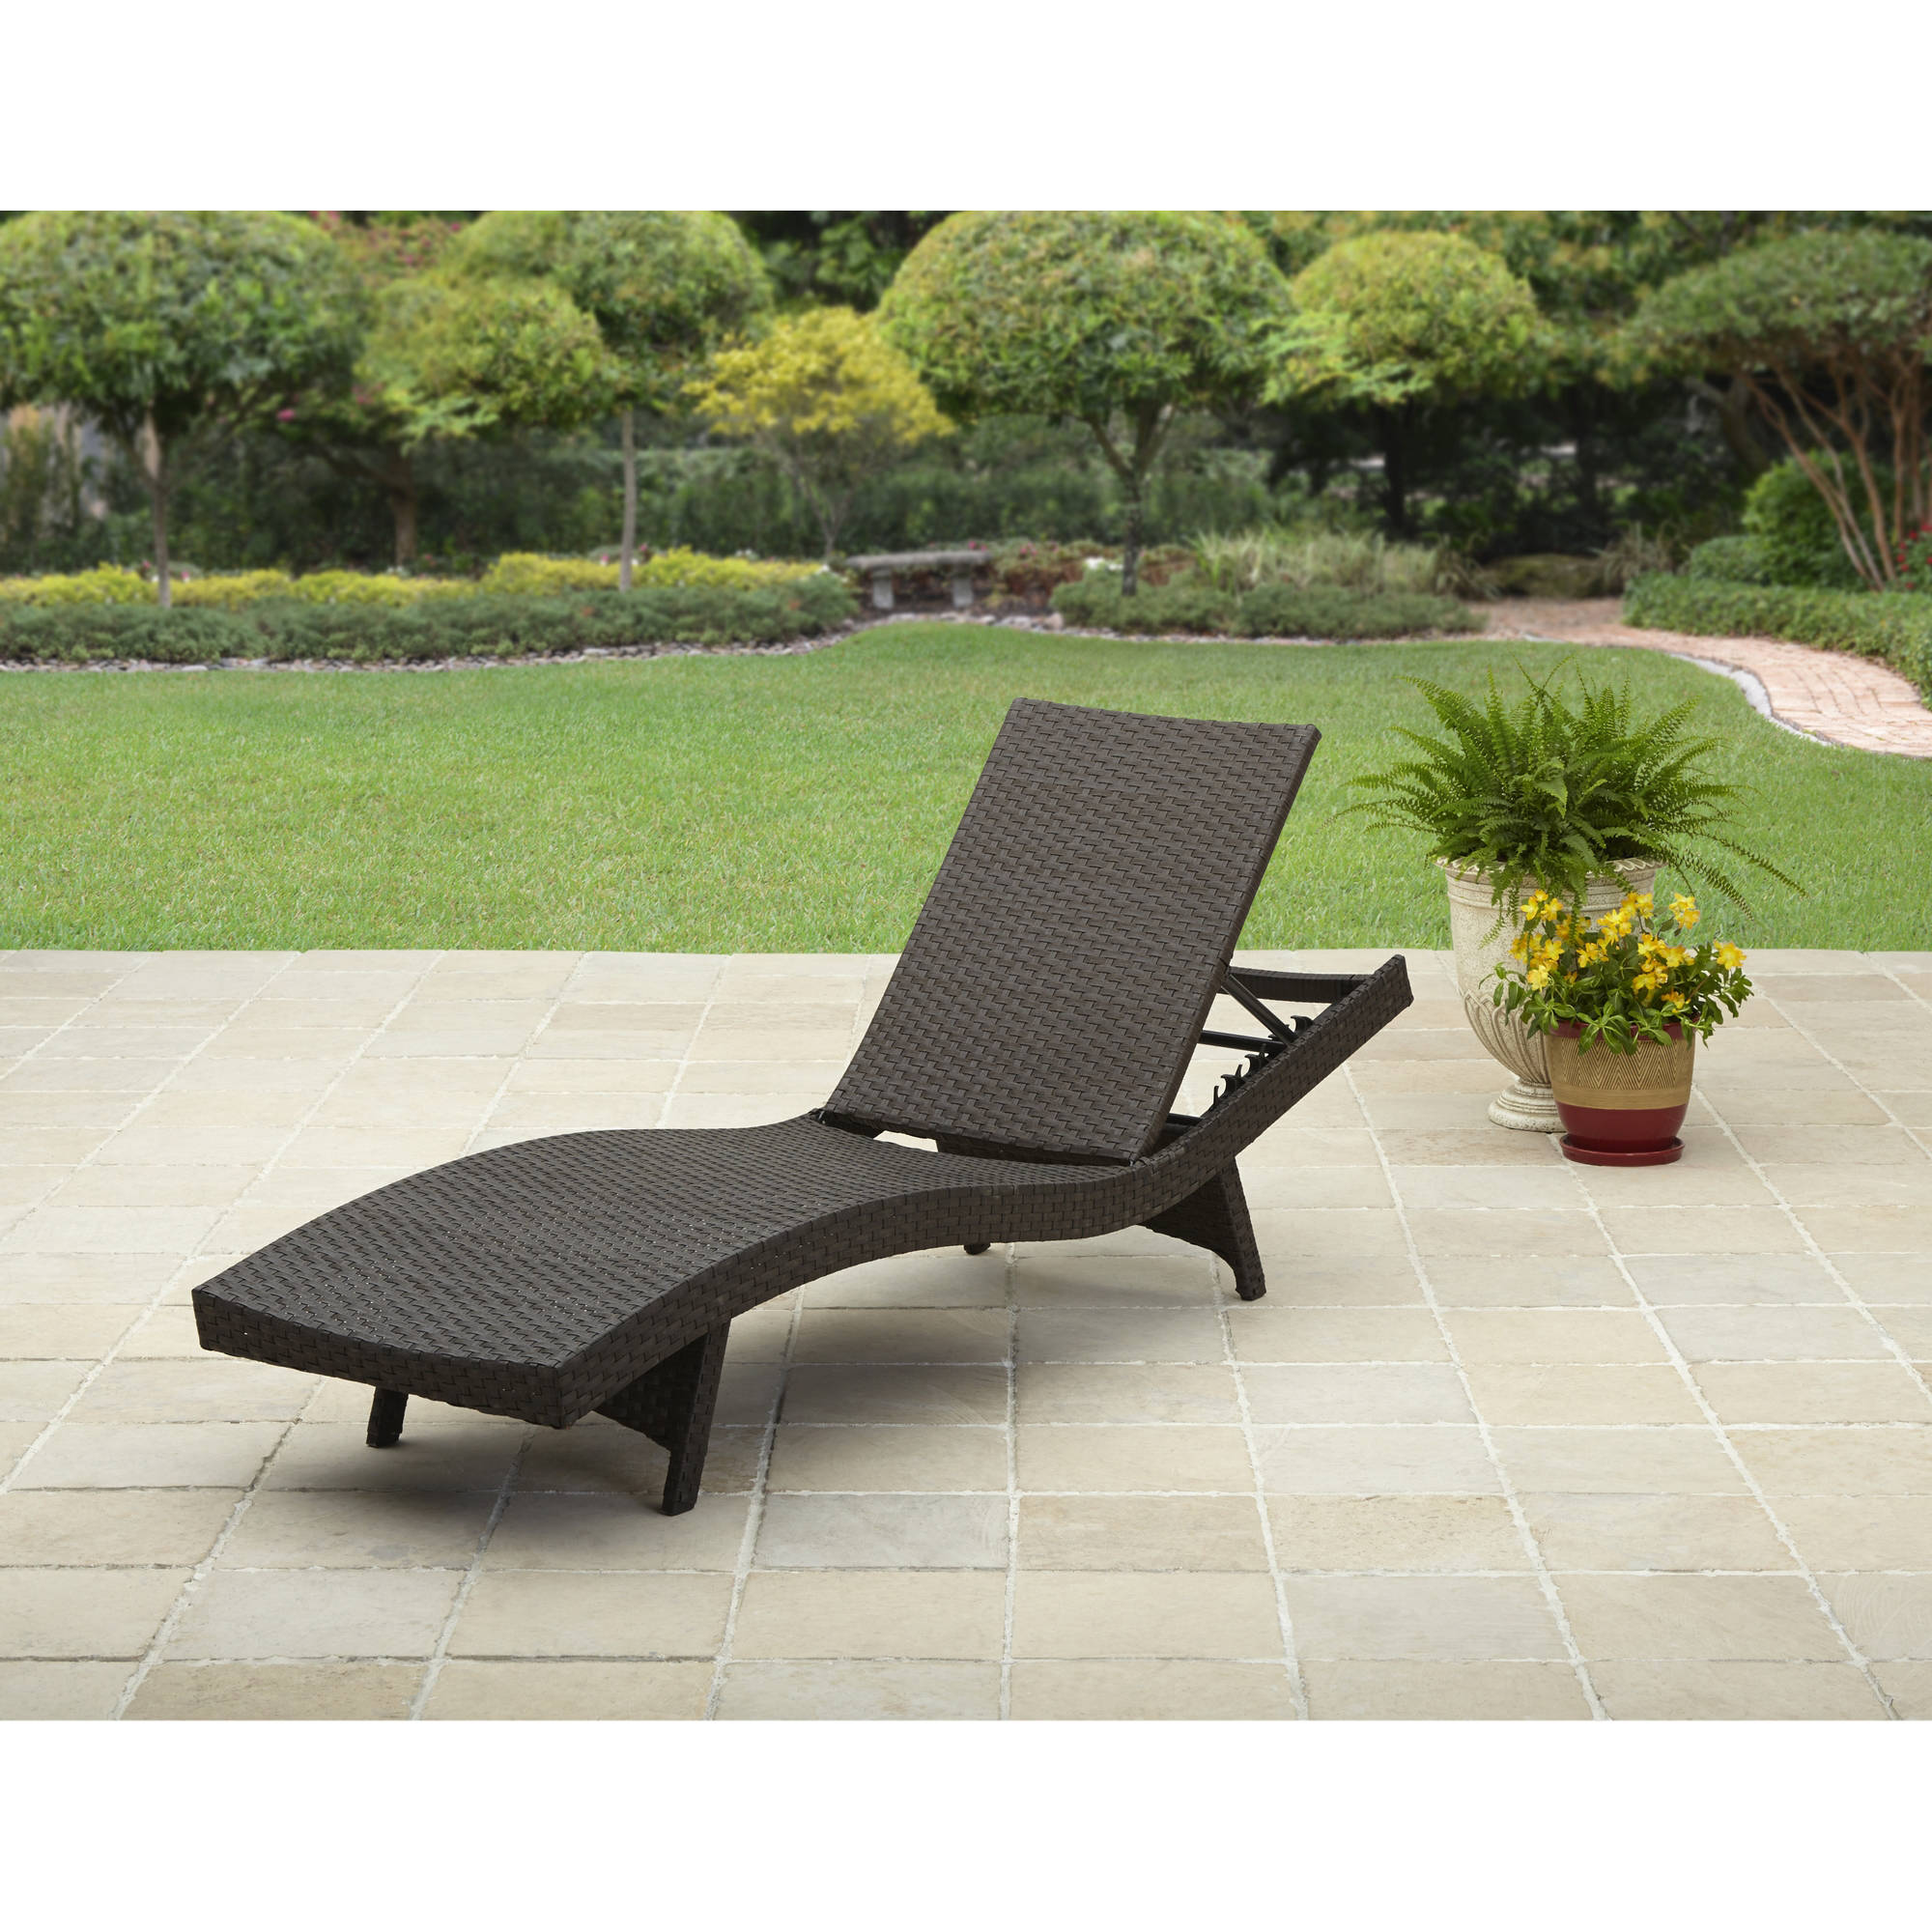 Better Homes And Gardens Avila Beach Chaise   Walmart.com